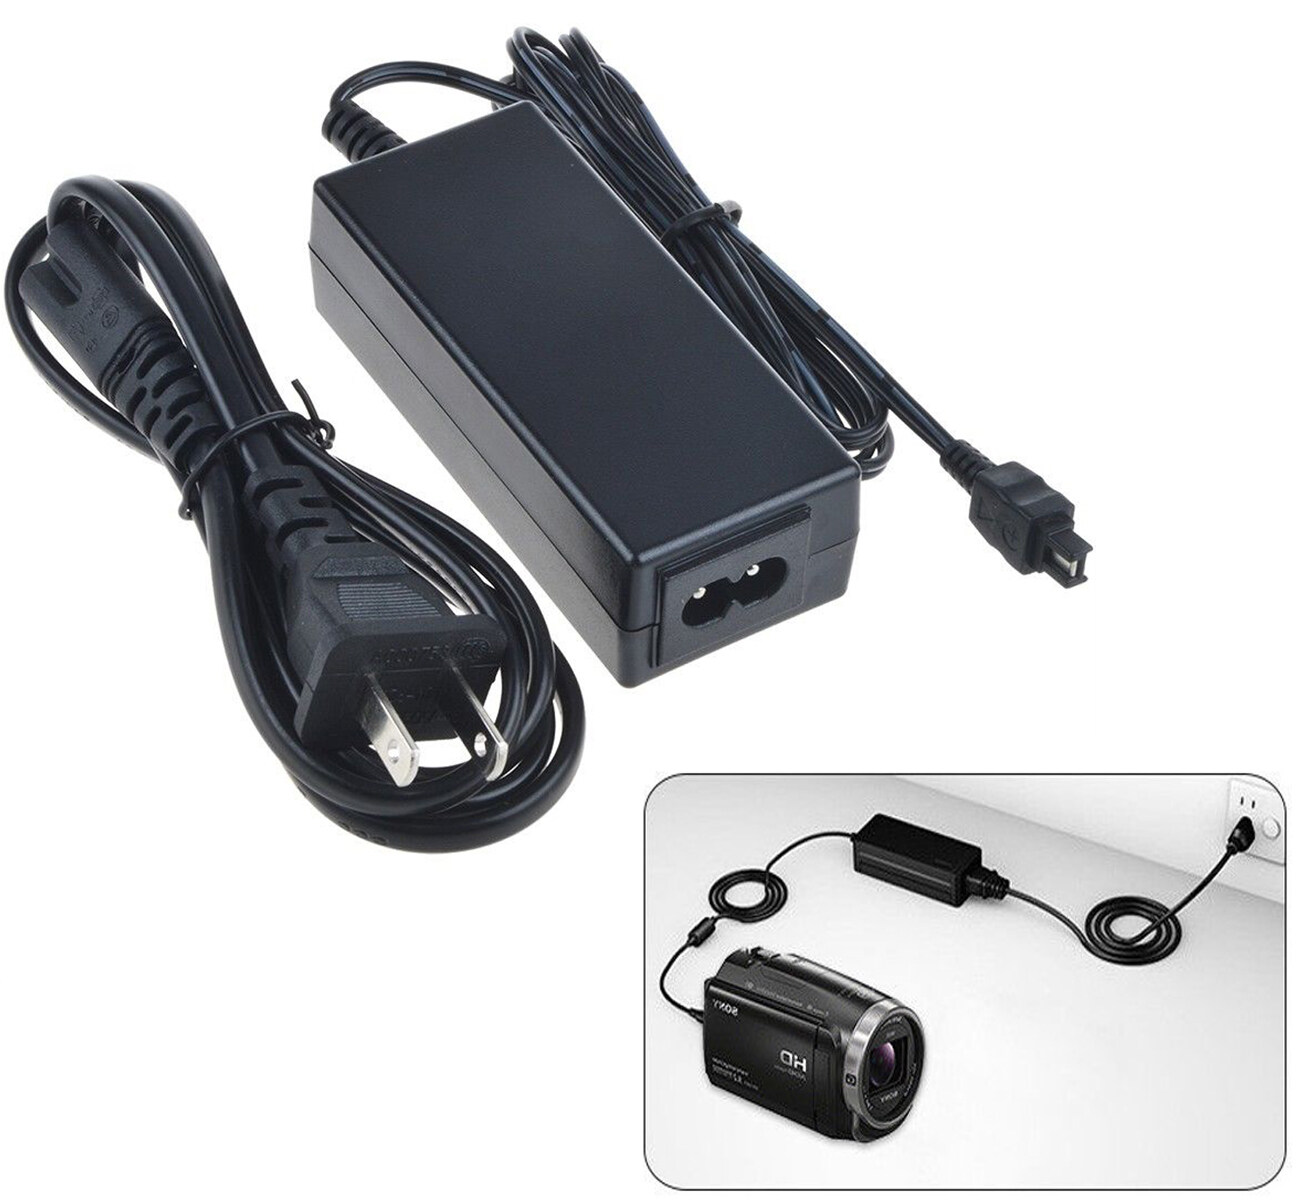 AC Wall Battery Power Charger Adapter for Sony Camcorder HDR-CX115 E HDR-CX116 E